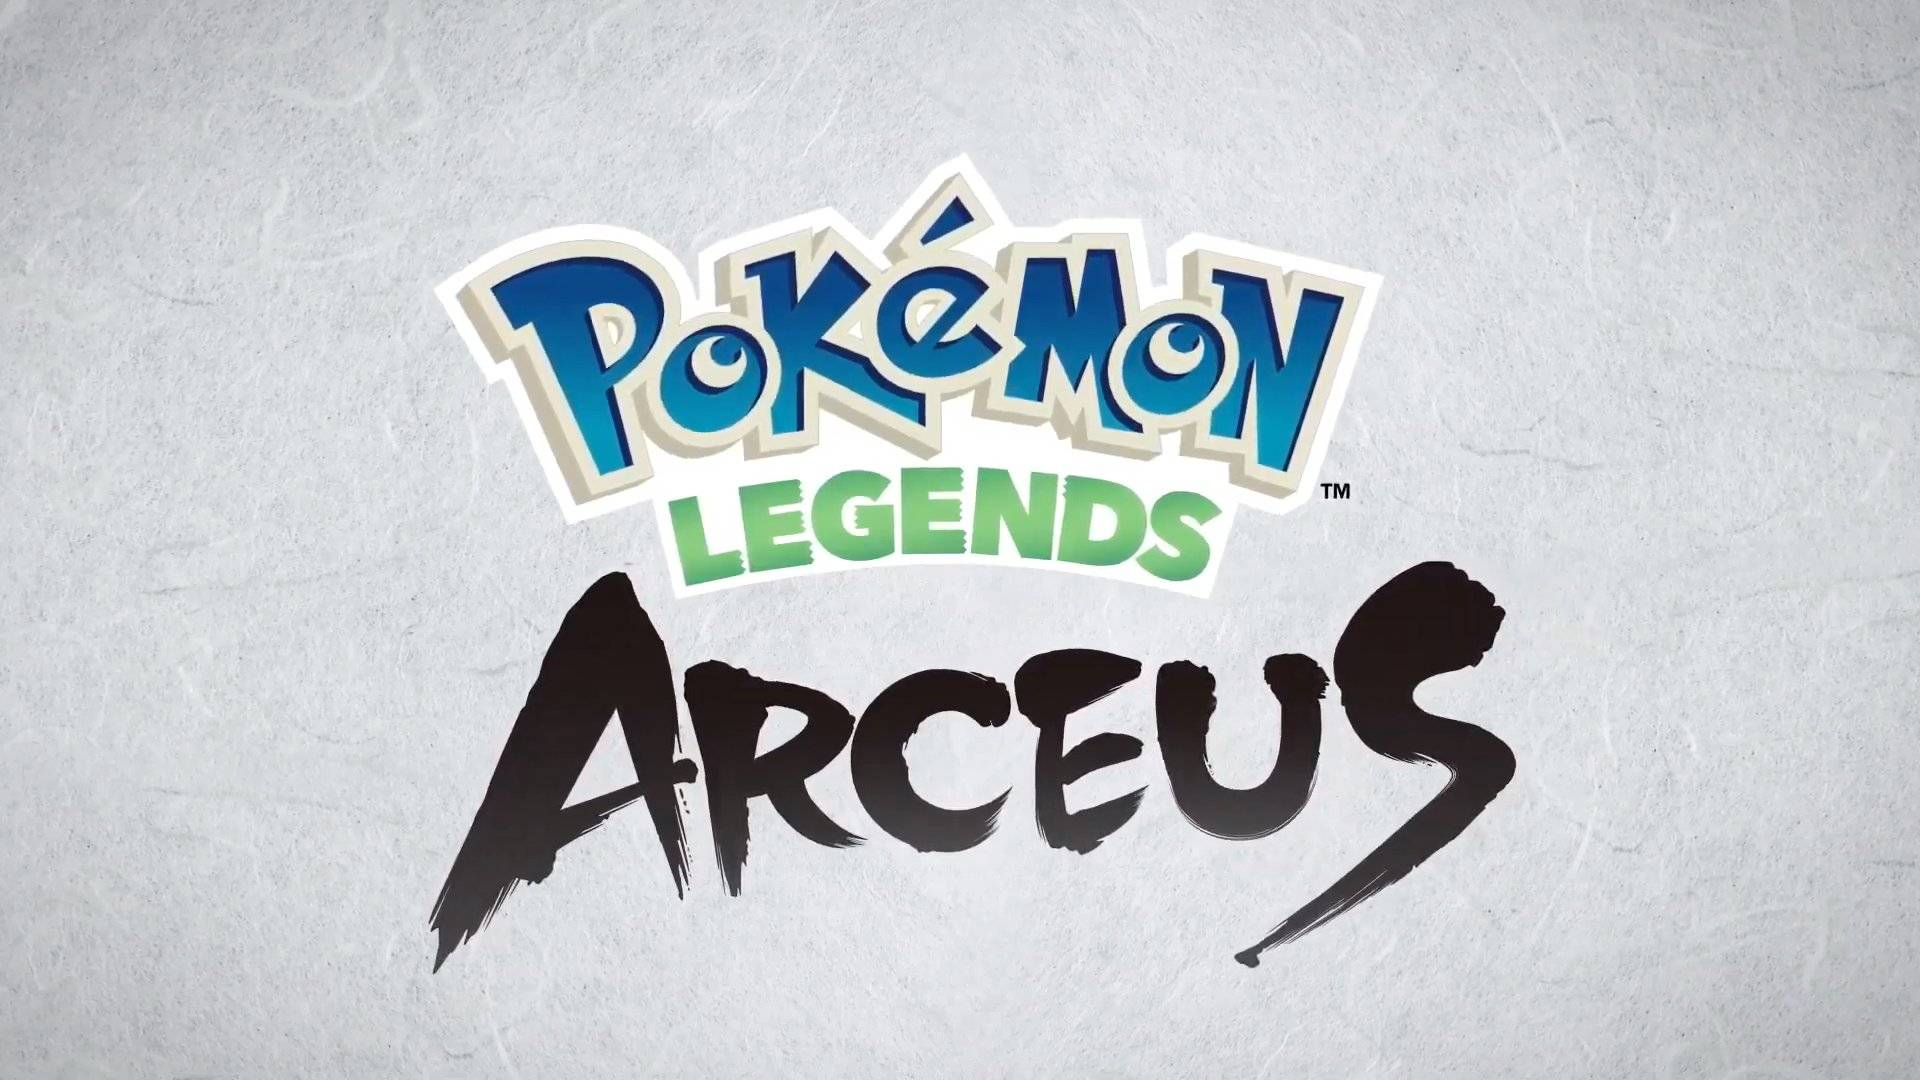 Pokémon Legends Arceus trailer, release date, news and what we want to see